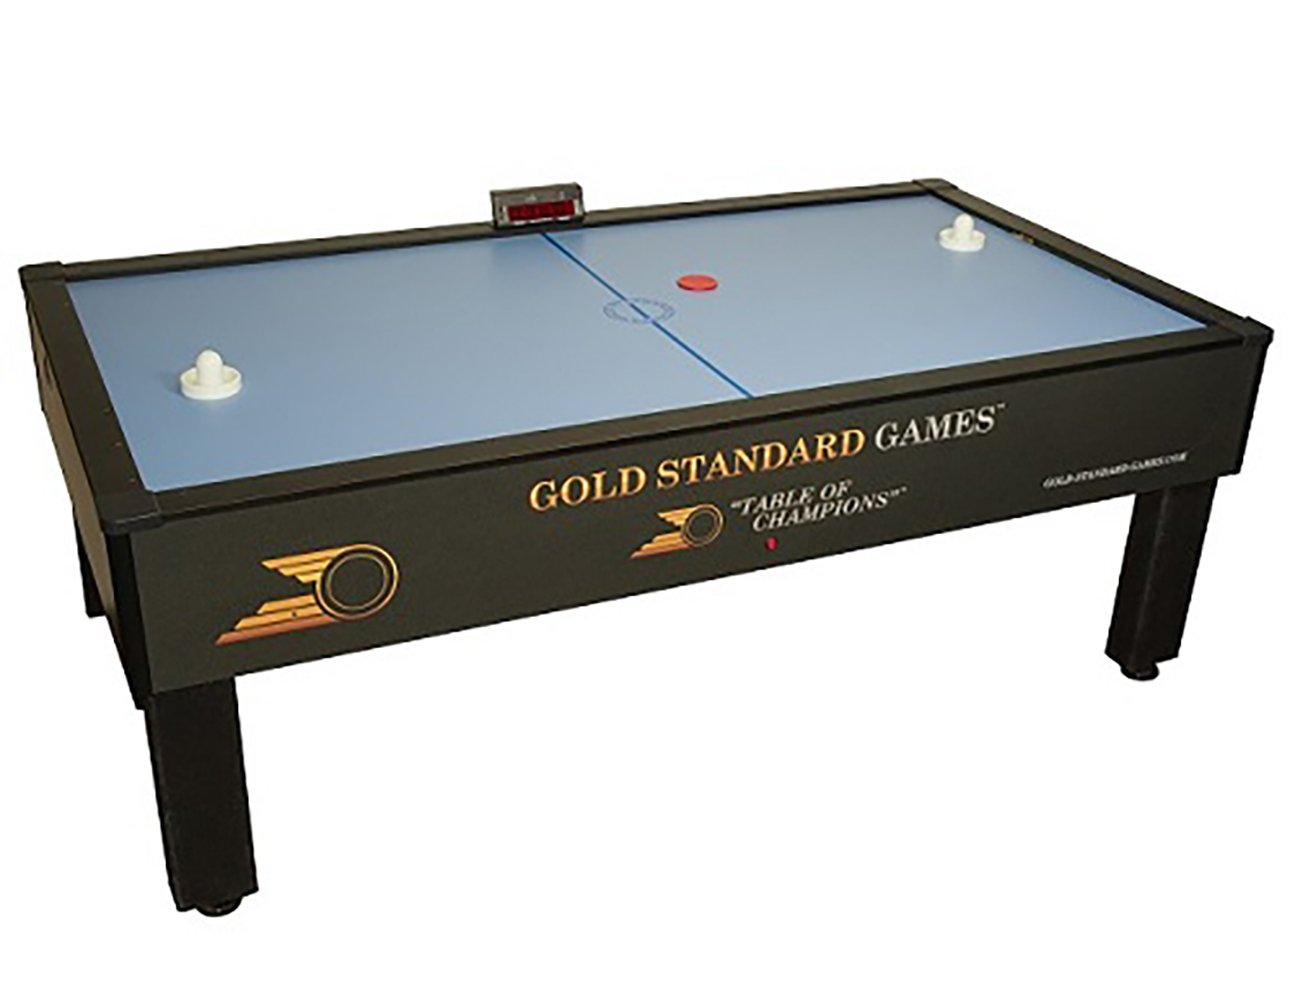 Home Pro Elite Air Hockey Table by Gold Standard Games